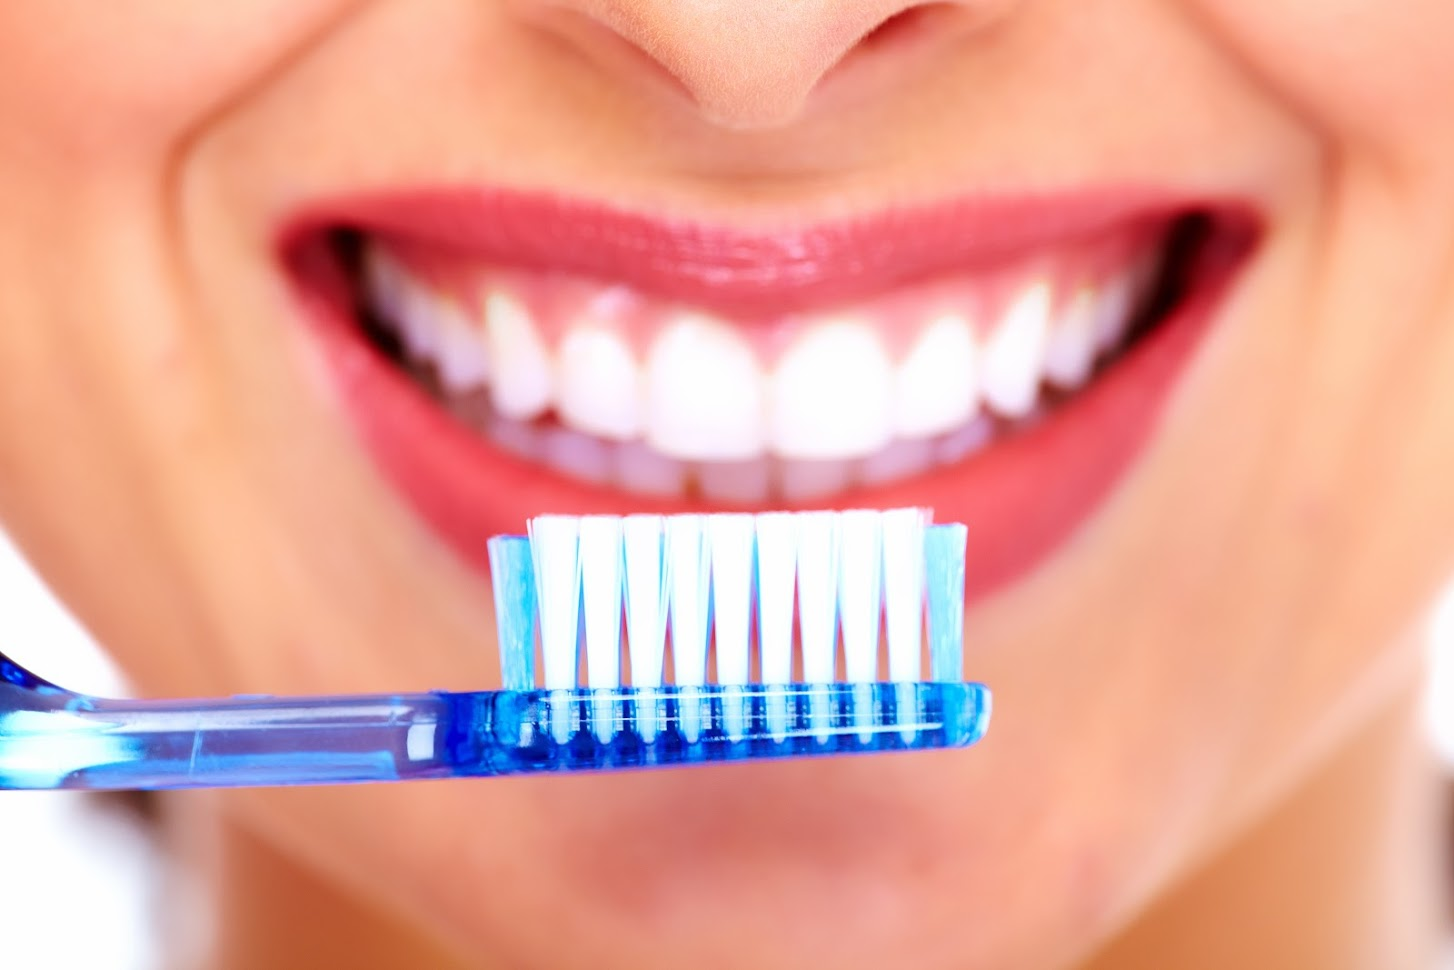 This is the image for the news article titled Is Your Toothbrush Dirty?